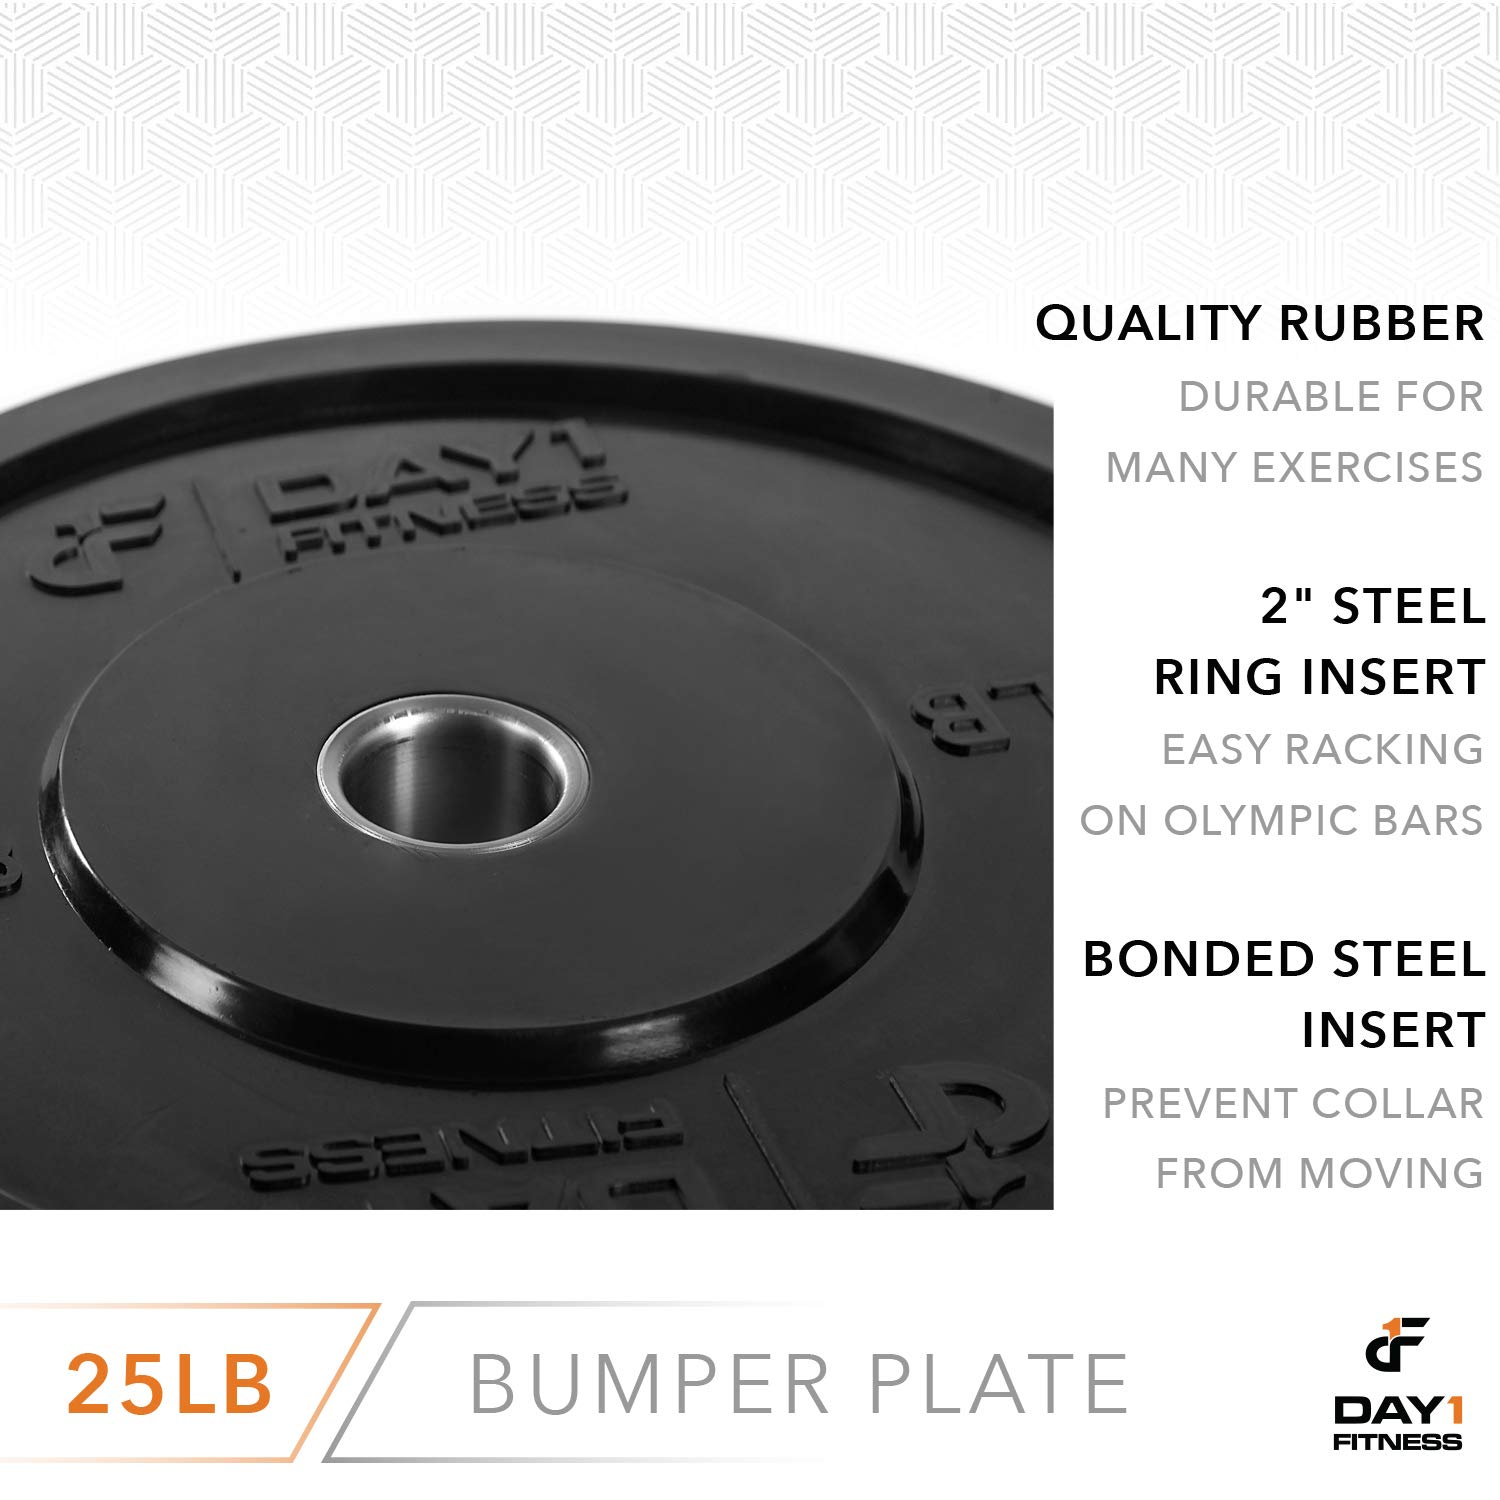 "Day 1 Fitness Olympic Bumper Weighted Plate 2"" for Barbells, Bars – 25 lb Single Plate - Shock-Absorbing, Minimal Bounce Steel Weights with Bumpers for Lifting, Strength Training, and Working Out by Day 1 Fitness (Image #5)"